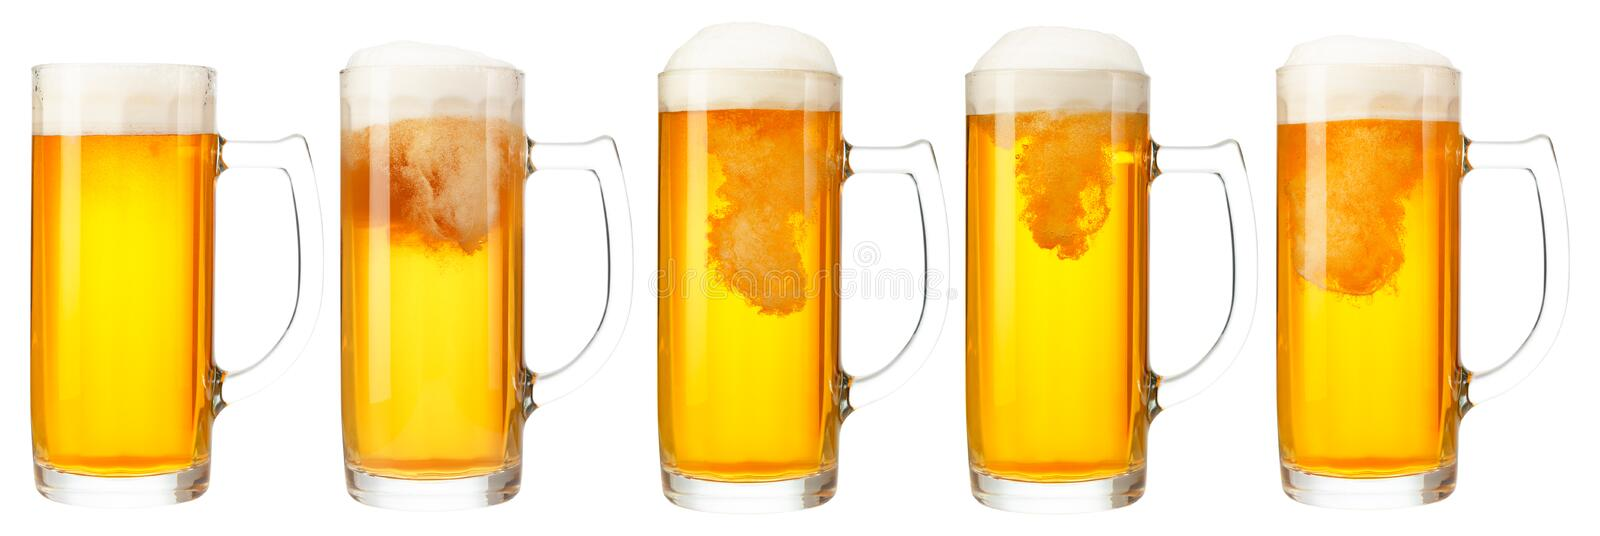 Set of mugs of cold light beer with foam isolated on white background. Set of mugs of cold light beer with foam isolated on white background royalty free stock photography